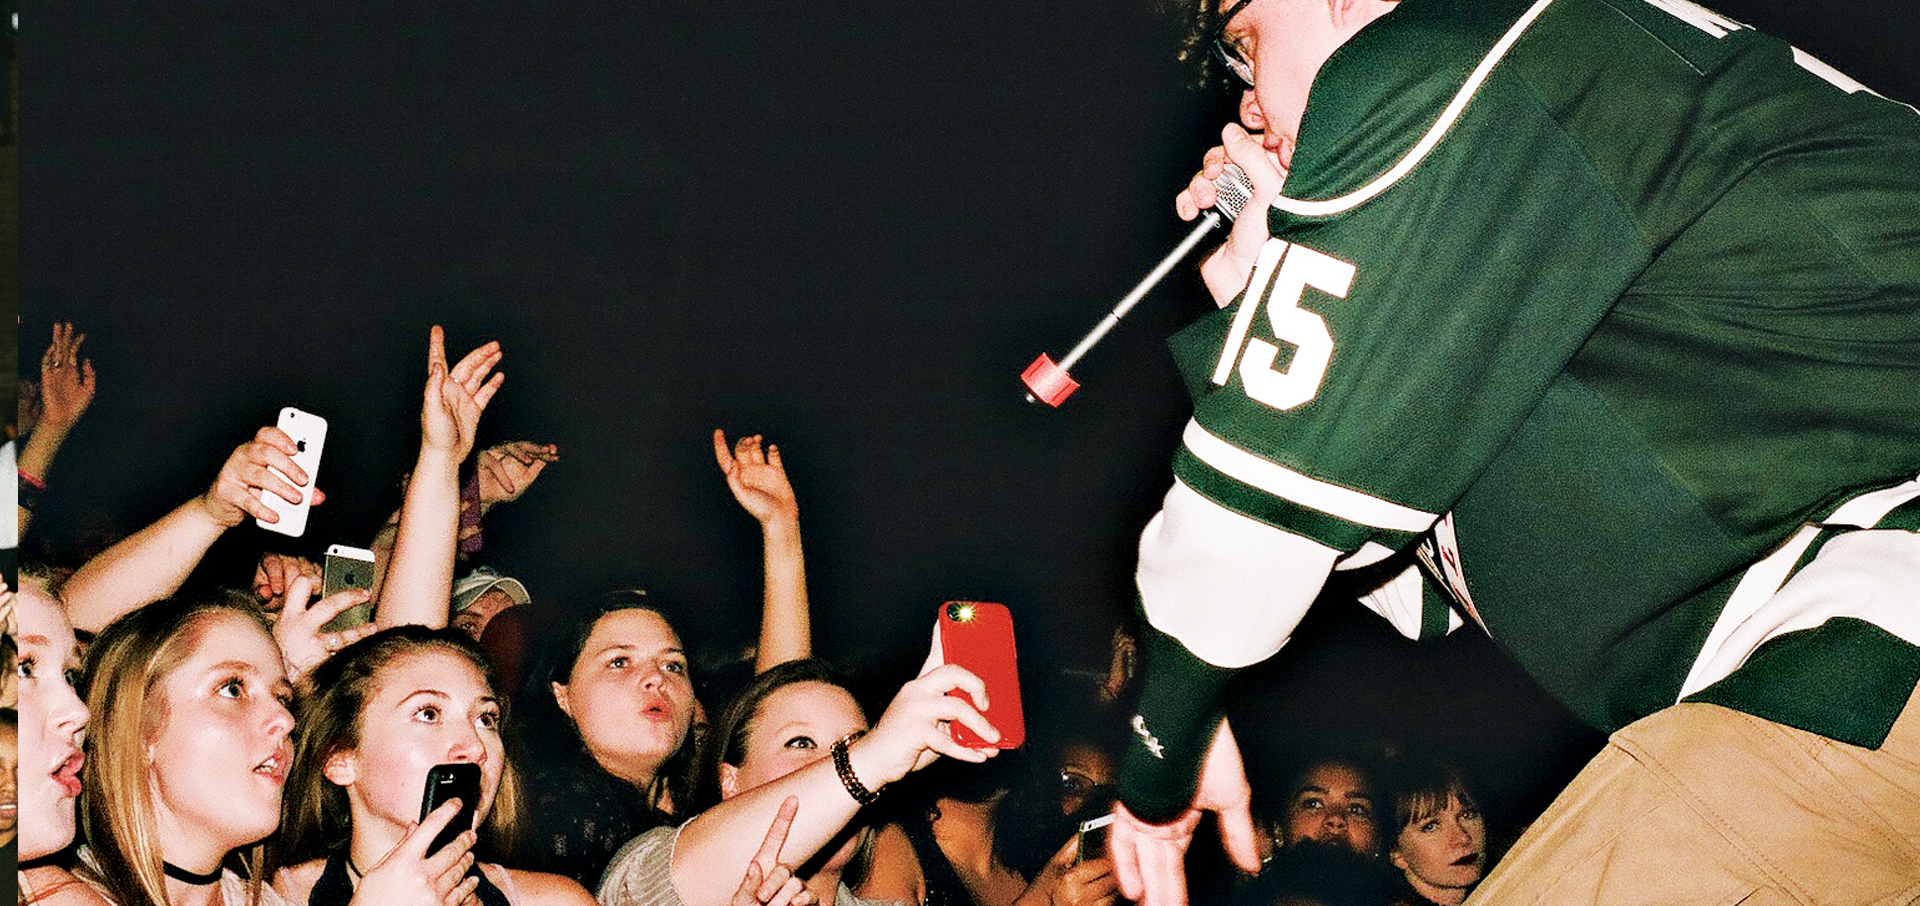 Jack Harlow performing at Headliners.